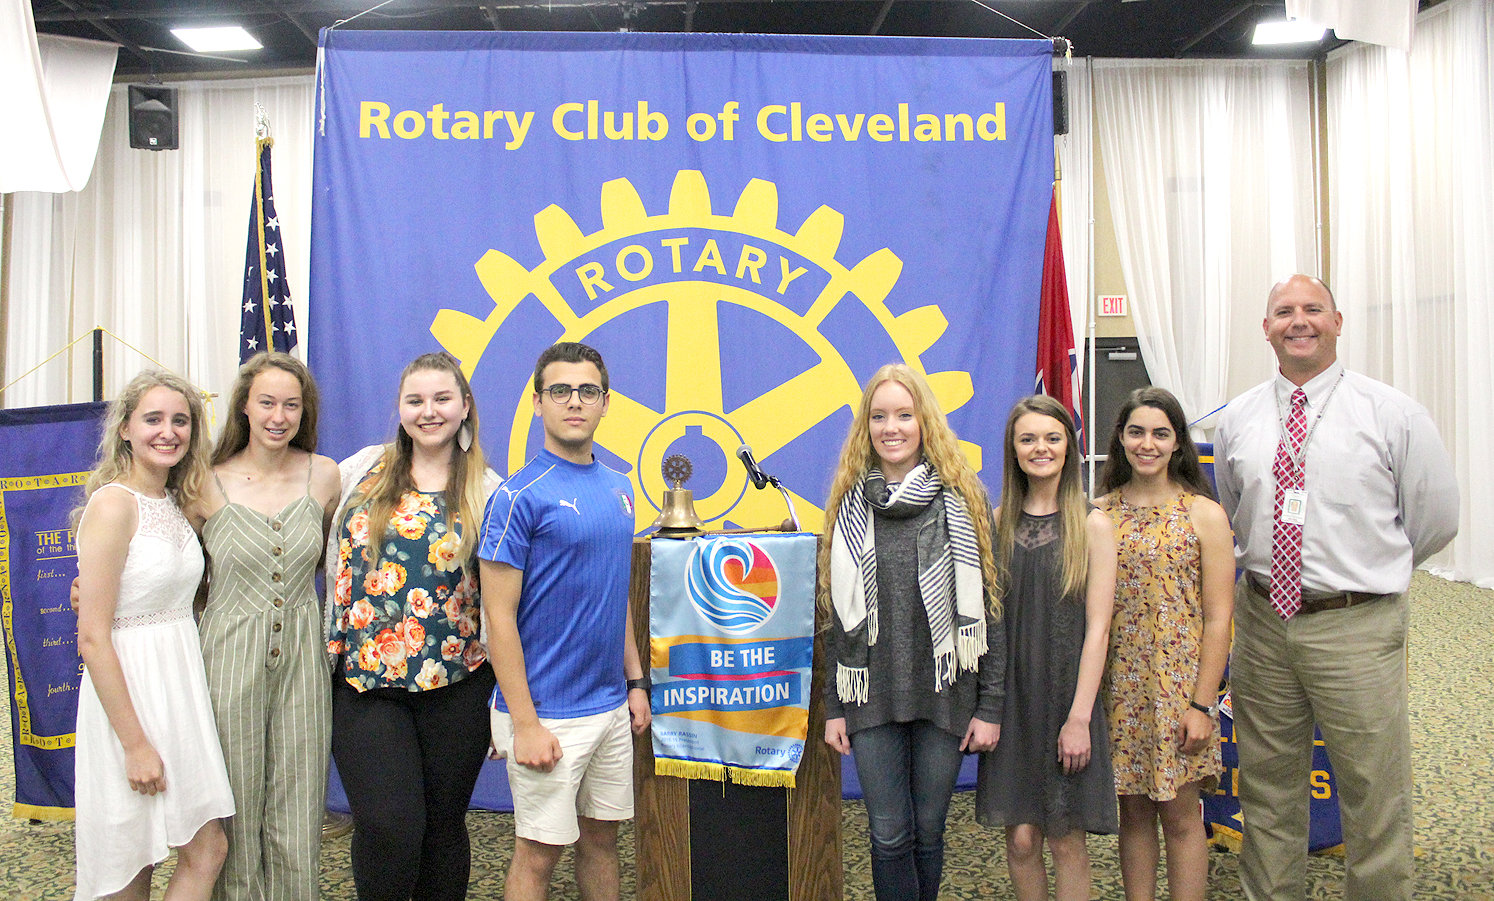 BRADLEY CENTRAL high school students participating in the Rotary Club International's Interact program described their volunteer work during a Rotary Club of Cleveland luncheon held Tuesday at the Museum Center.  From left are Alison Cummings, Anna Stouffer, Lacey Smith, Salvatore Ingenito, Brynna Frakes, Payton Sowder, Kate Gwaltney and faculty sponsor Andy McMahan. Ingenito is an exchange student from Sicily, Italy.